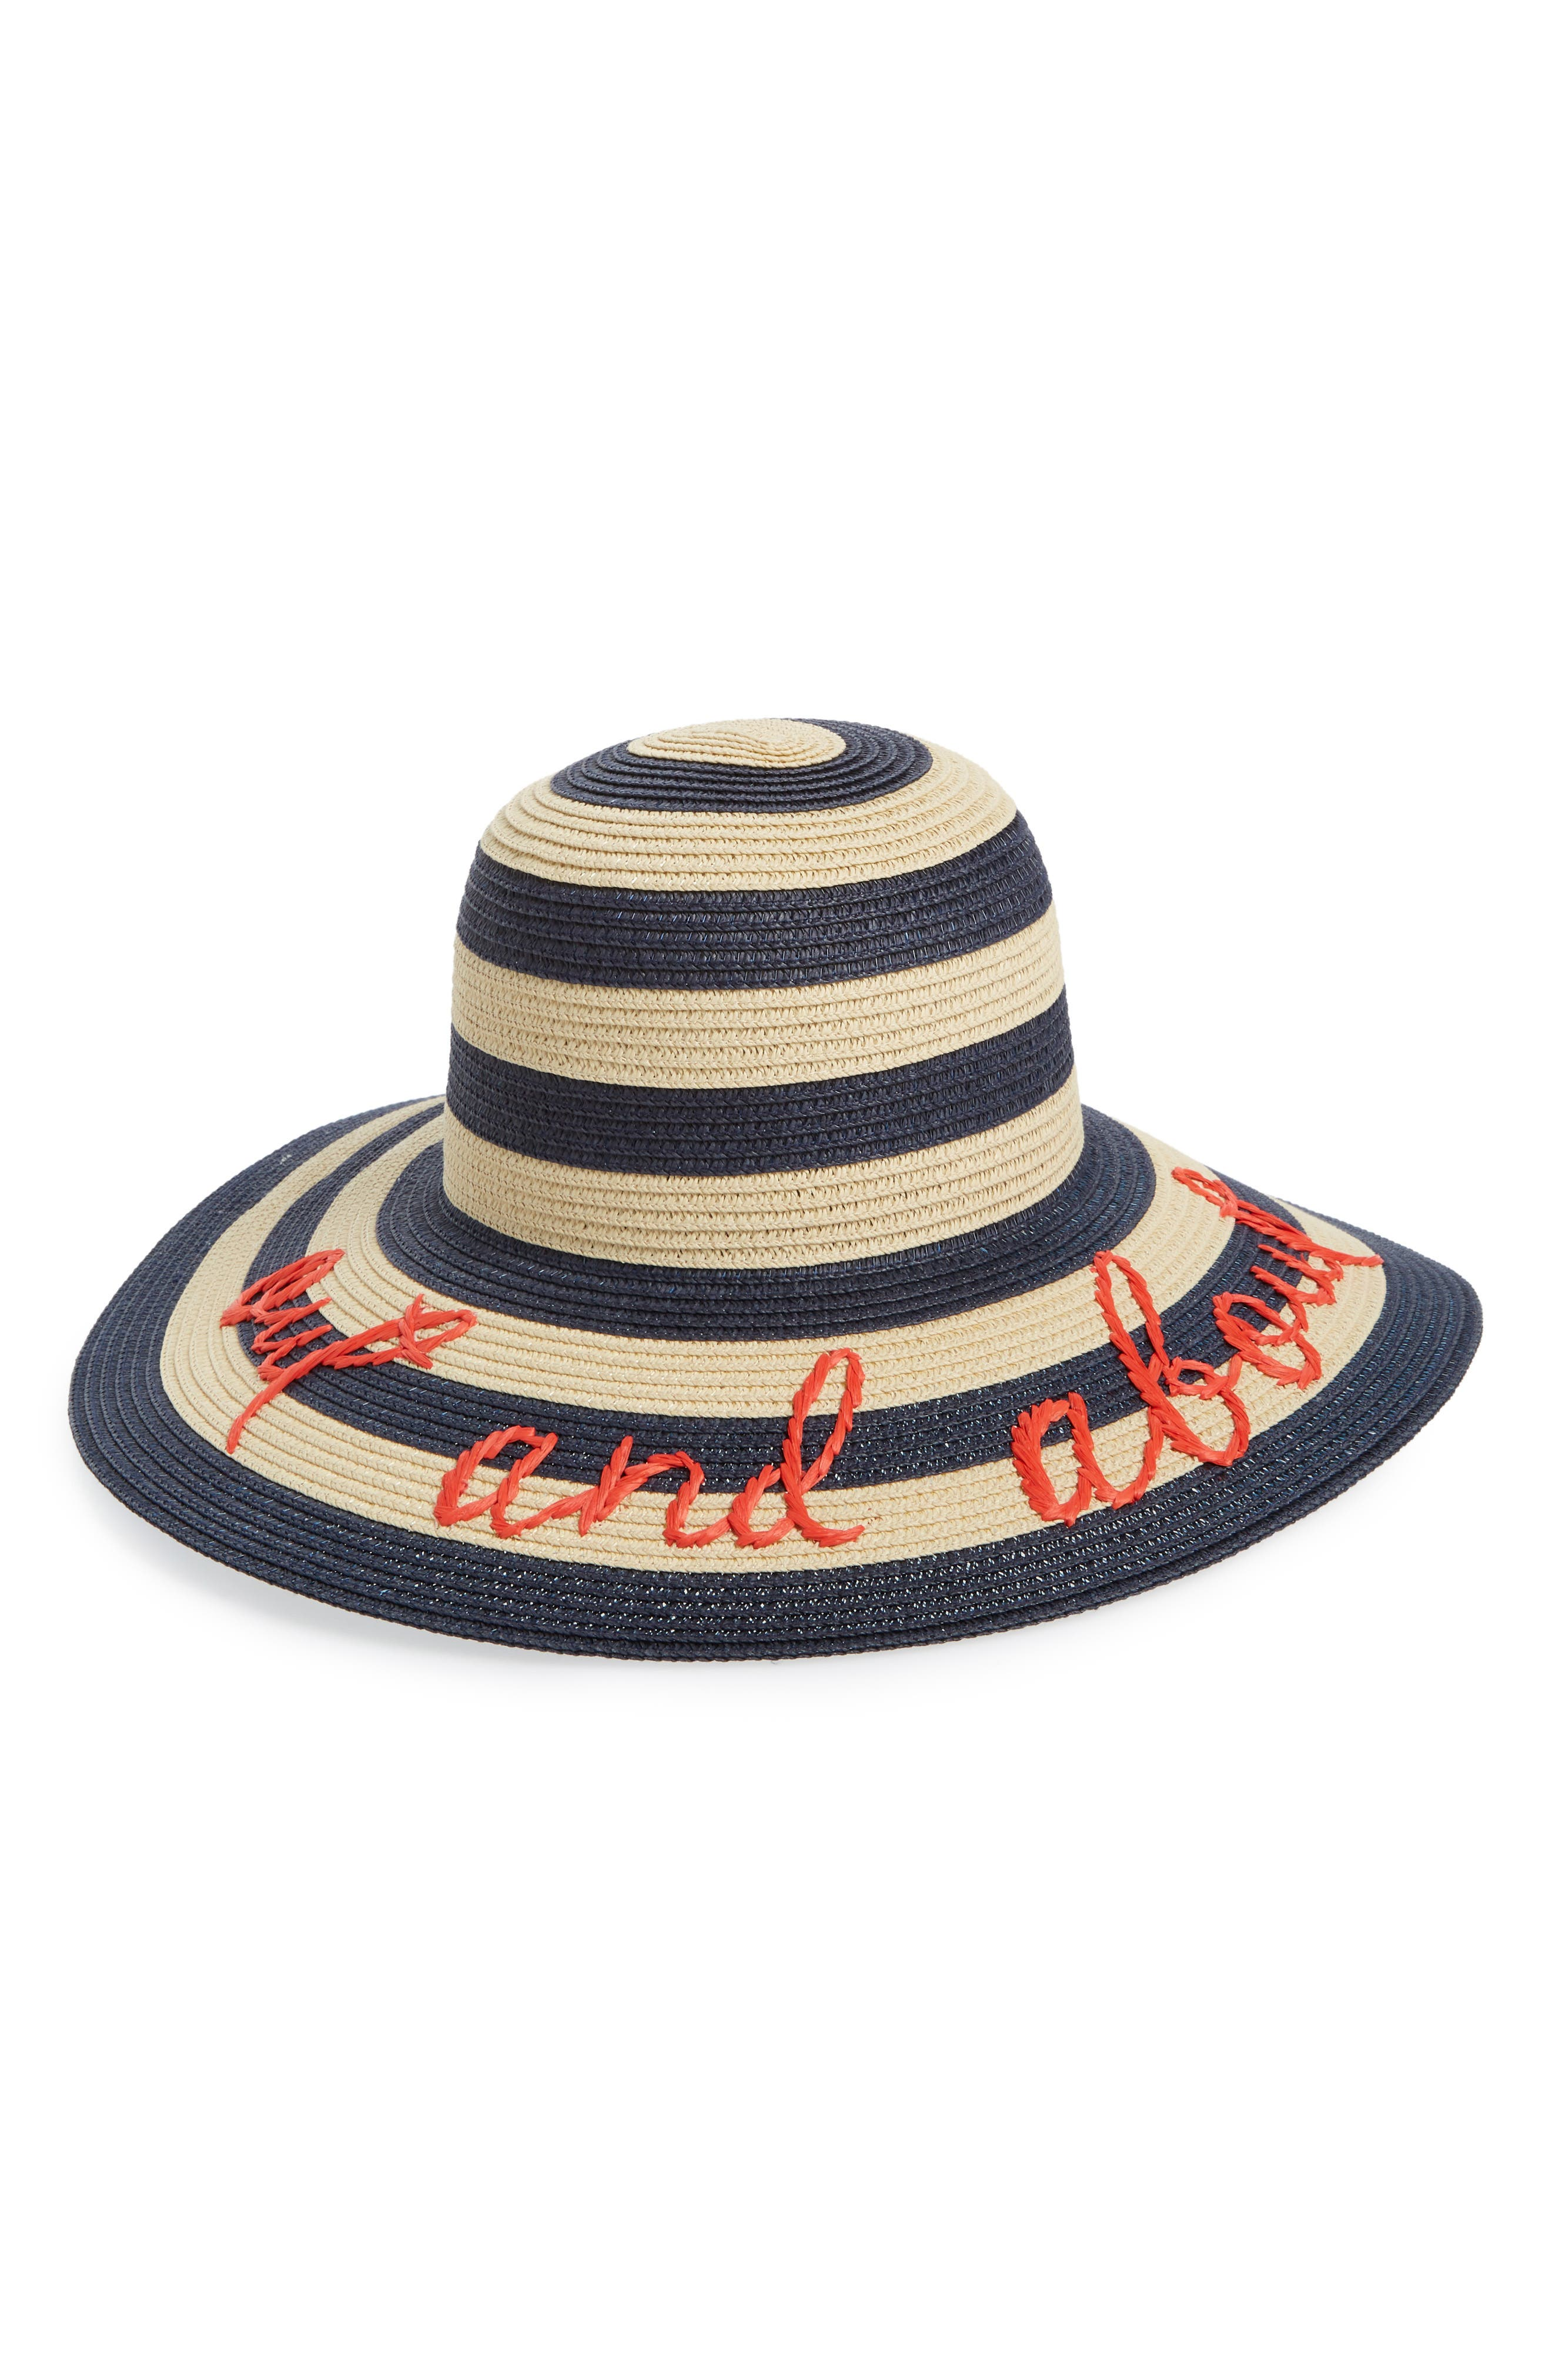 kate spade out and about straw hat,                         Main,                         color, Rich Navy/ Natural/ Black